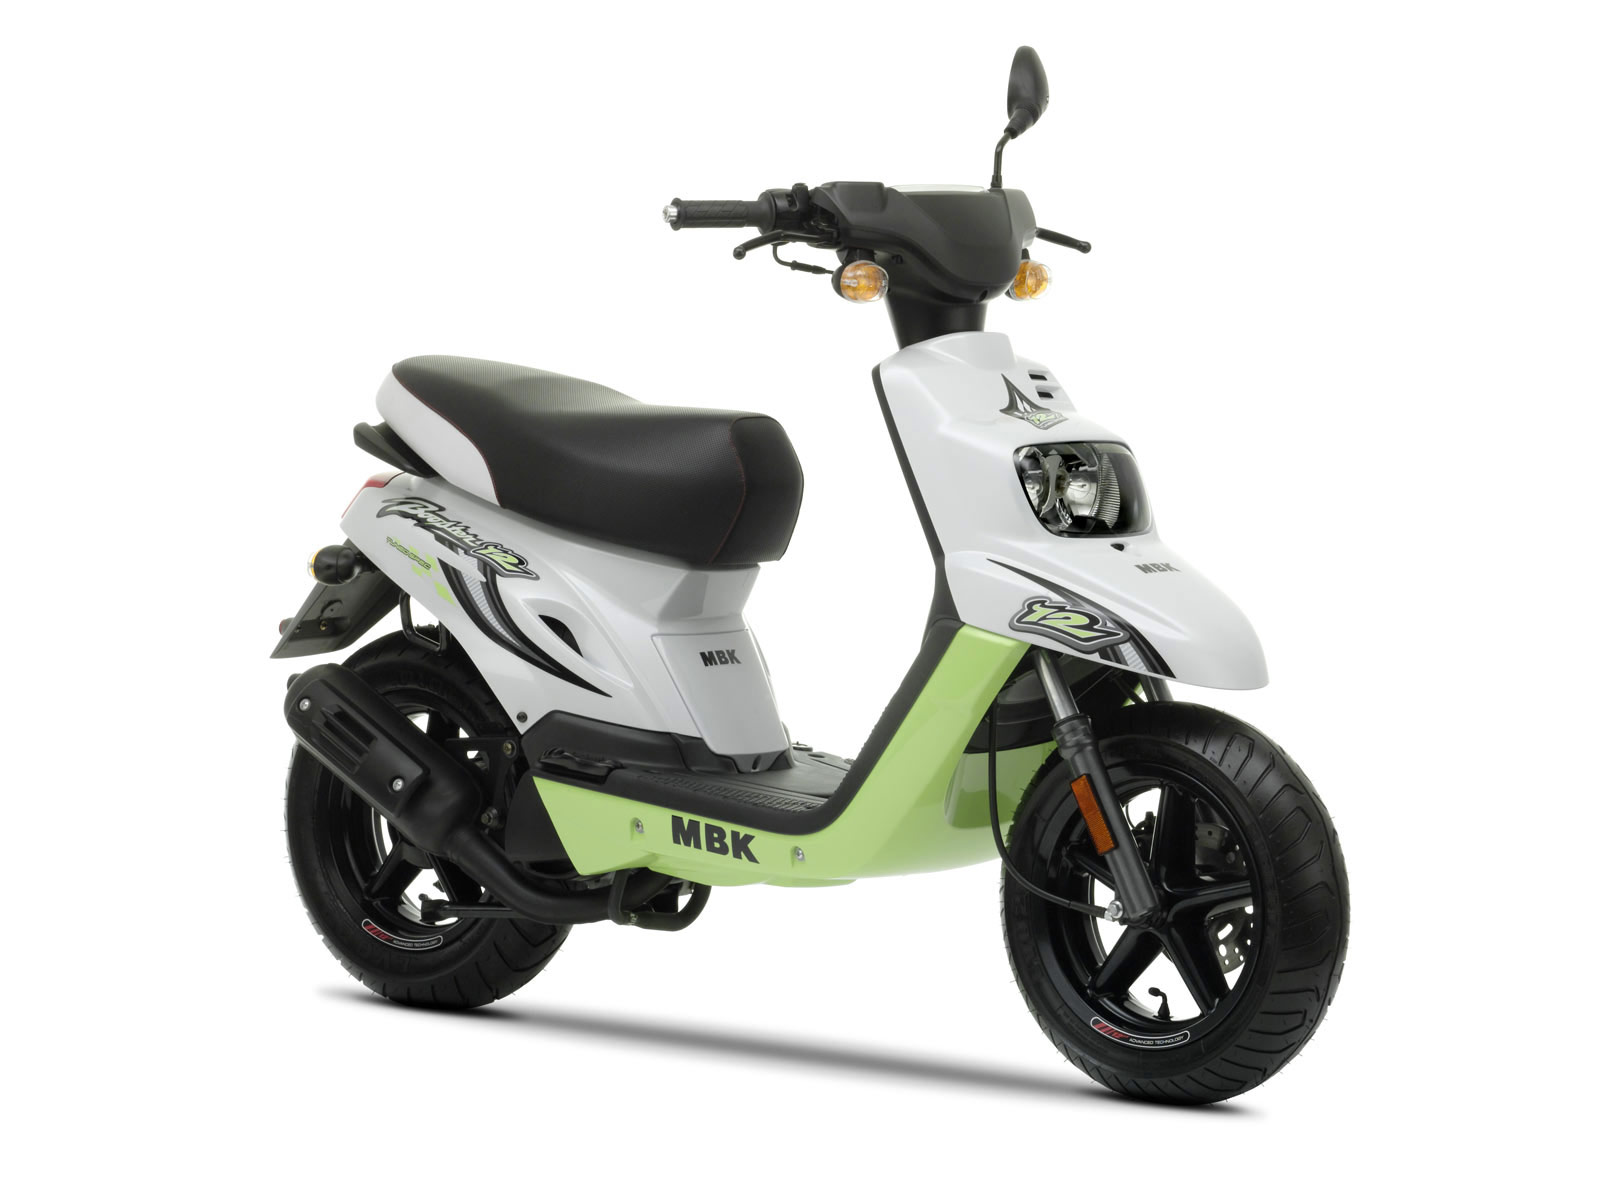 2009 mbk booster 12inch scooter pictures insurance information. Black Bedroom Furniture Sets. Home Design Ideas